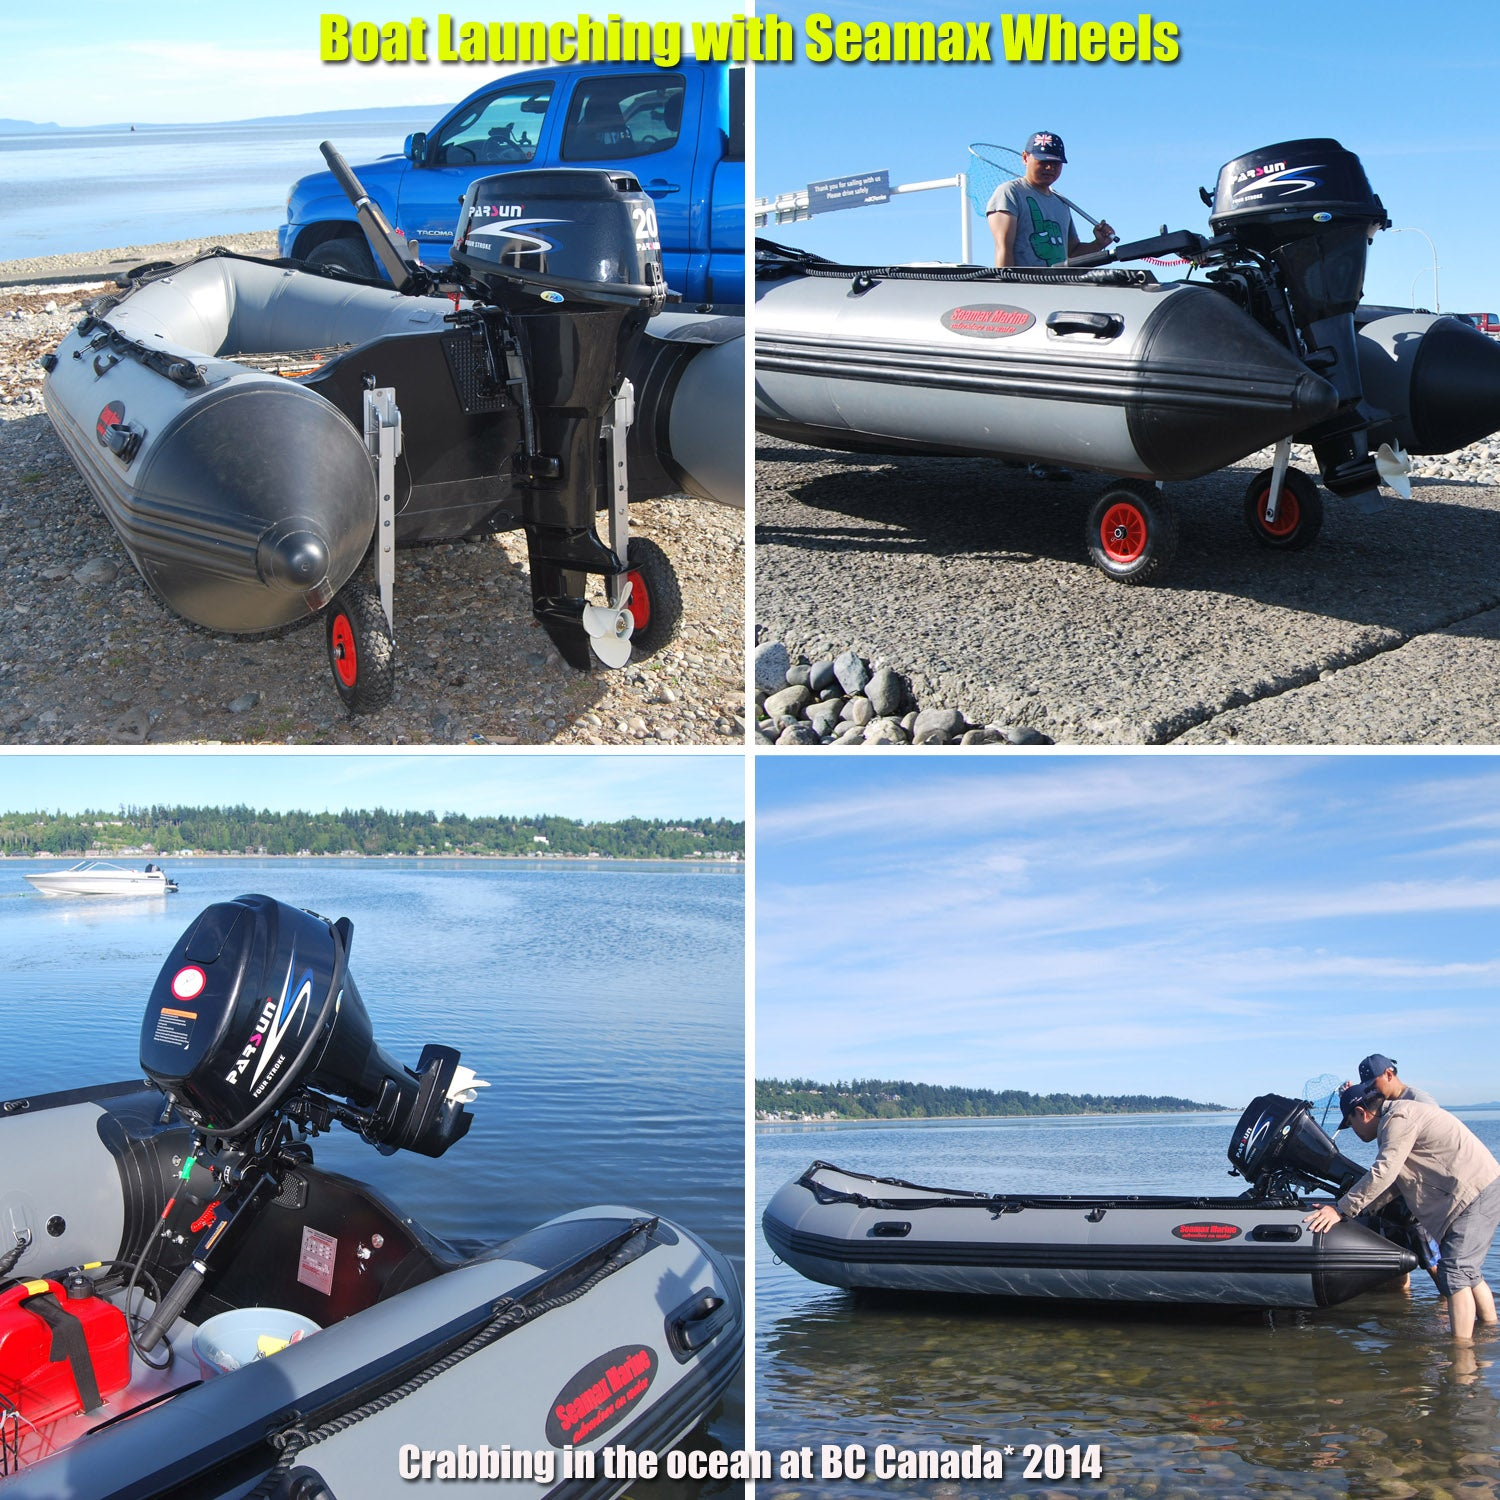 Seamax Ocean430 14 Feet Heavy Duty Inflatable Boat, Max 9 Passengers and  35HP Rated